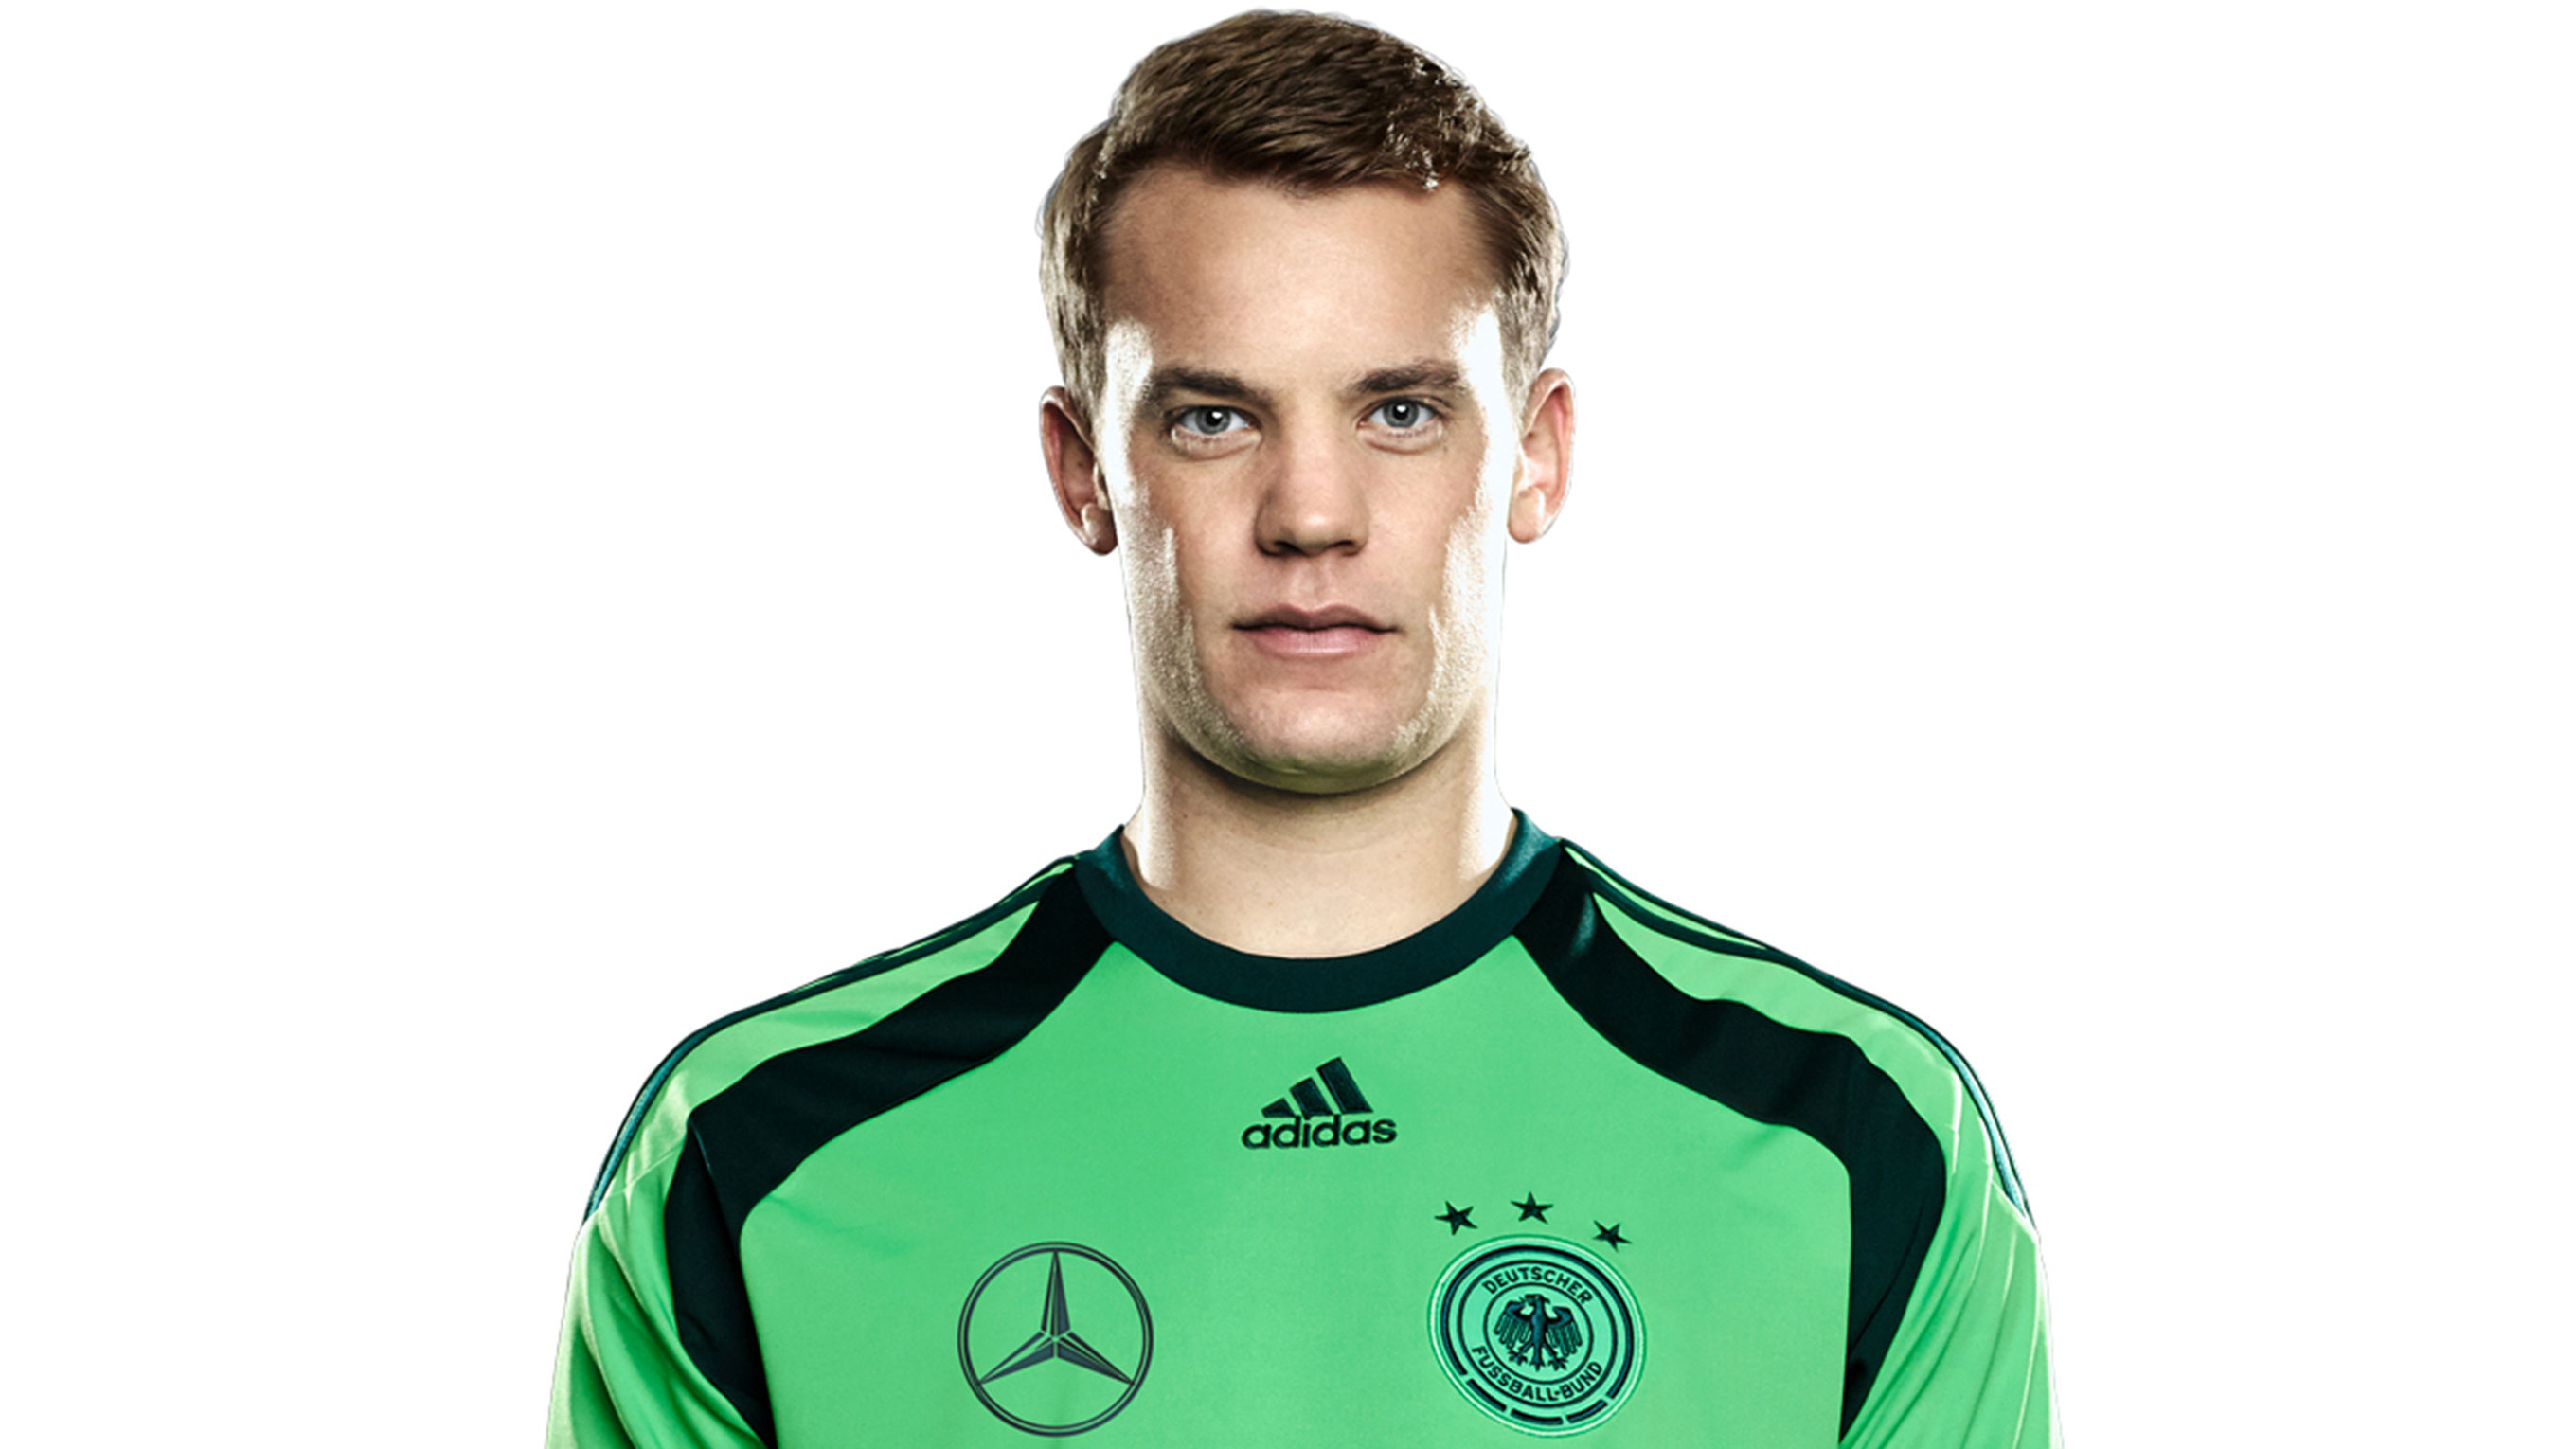 Manuel neuer the continuing domination of der lwmann and manuel neuer